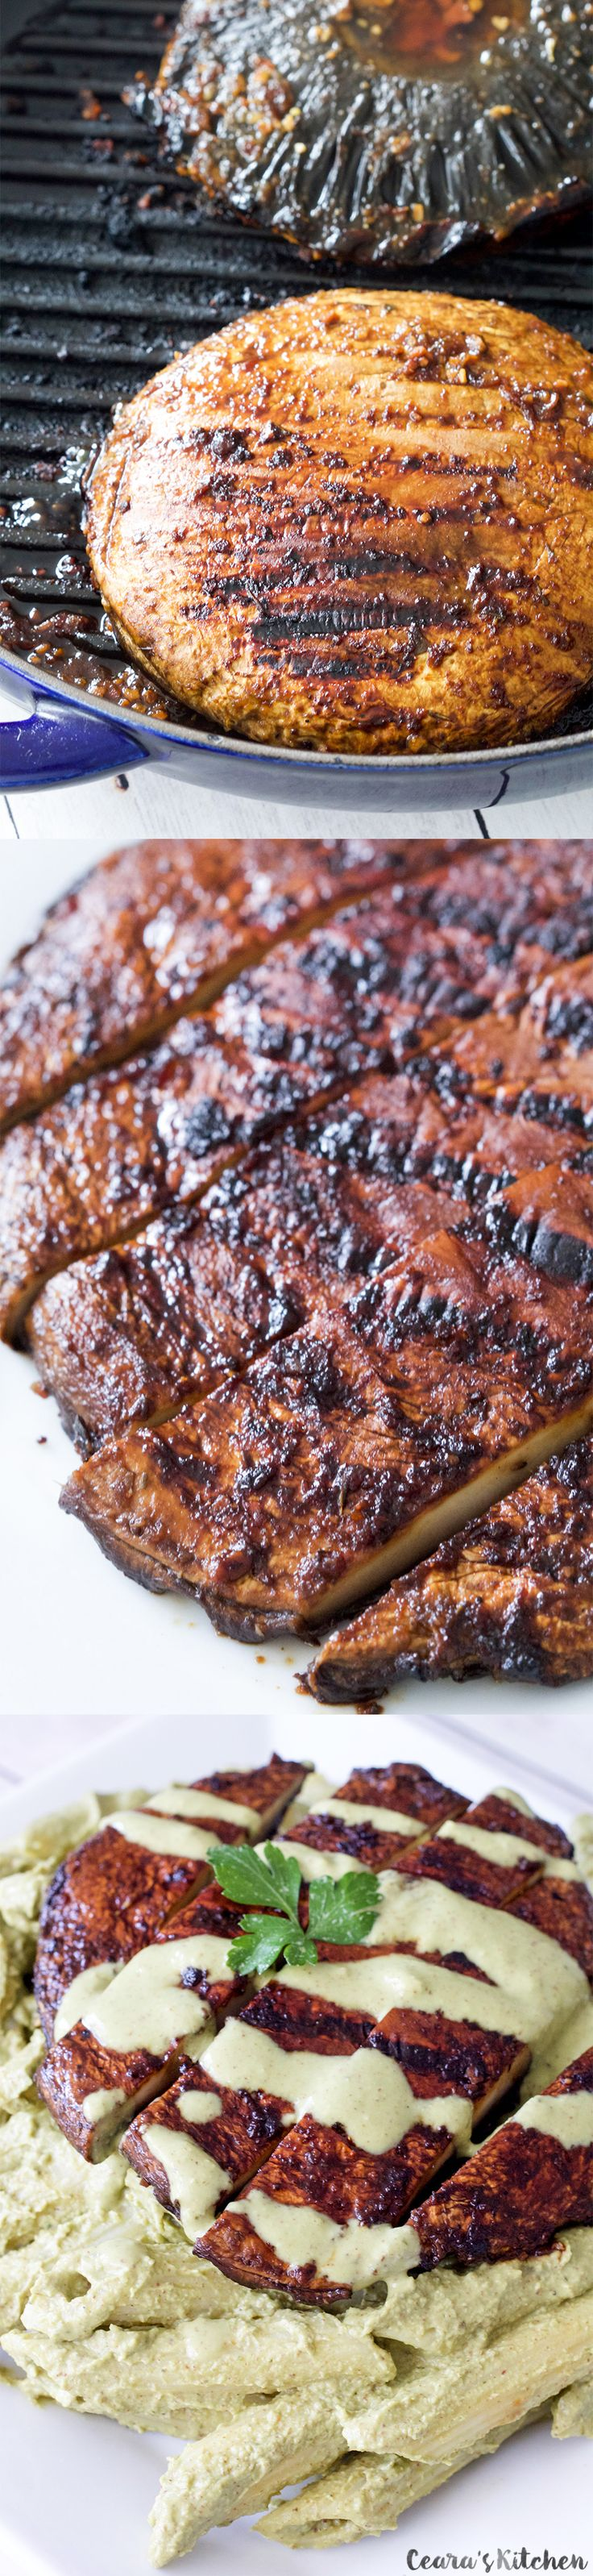 Thick, juicy and perfect #Vegan Steaks made with a garlic-soy marinade and a hint of maple syrup.